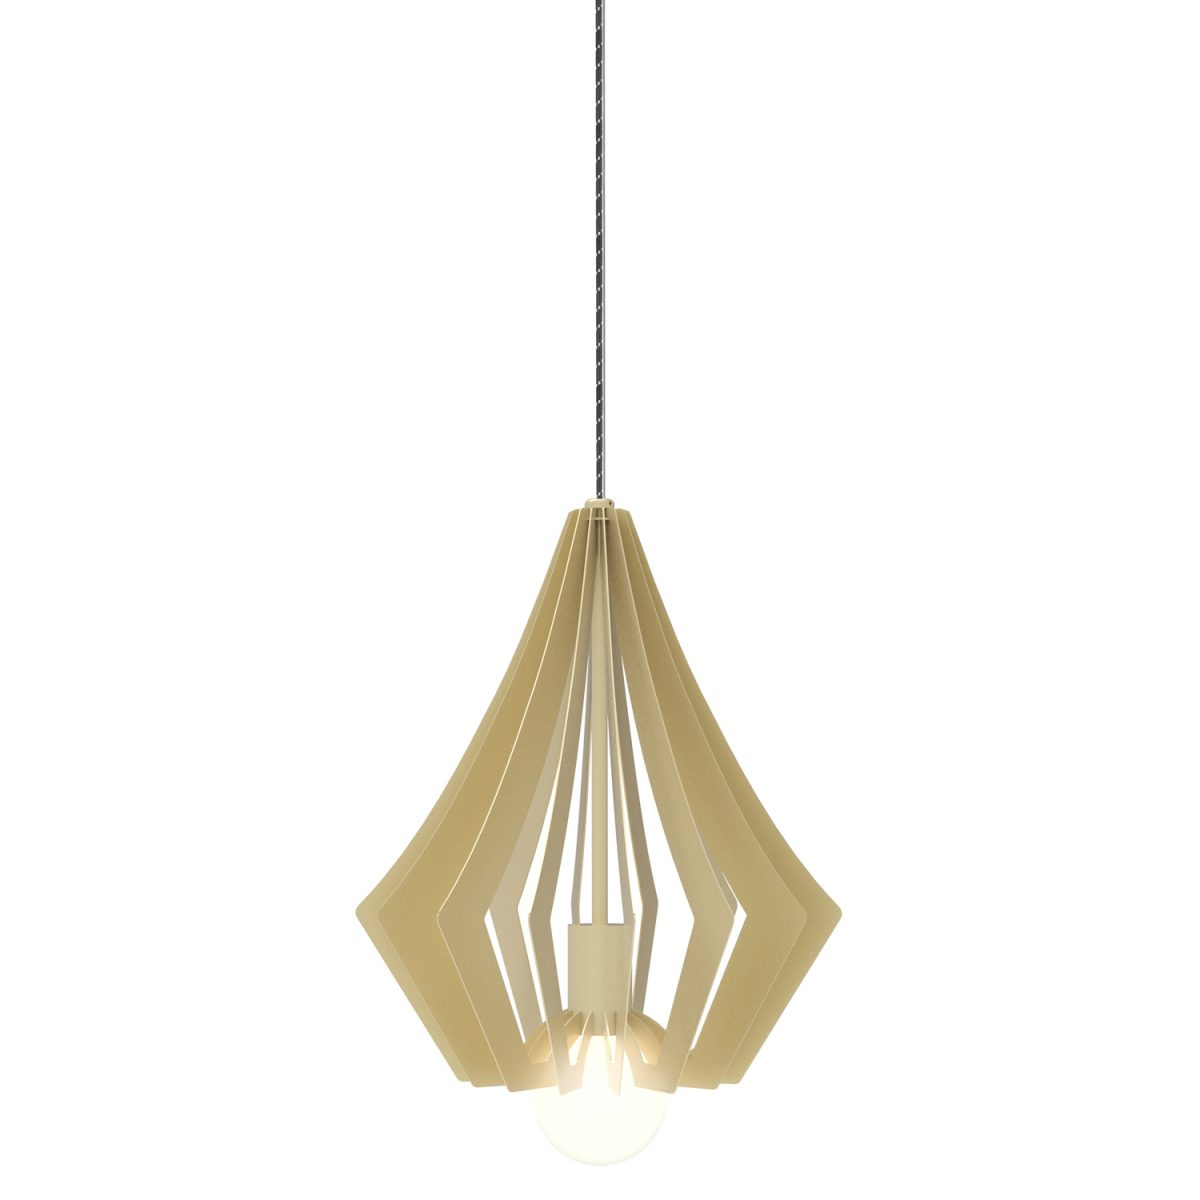 JSPR Beaudine I Champ Opaque Dutch Design Hanglamp